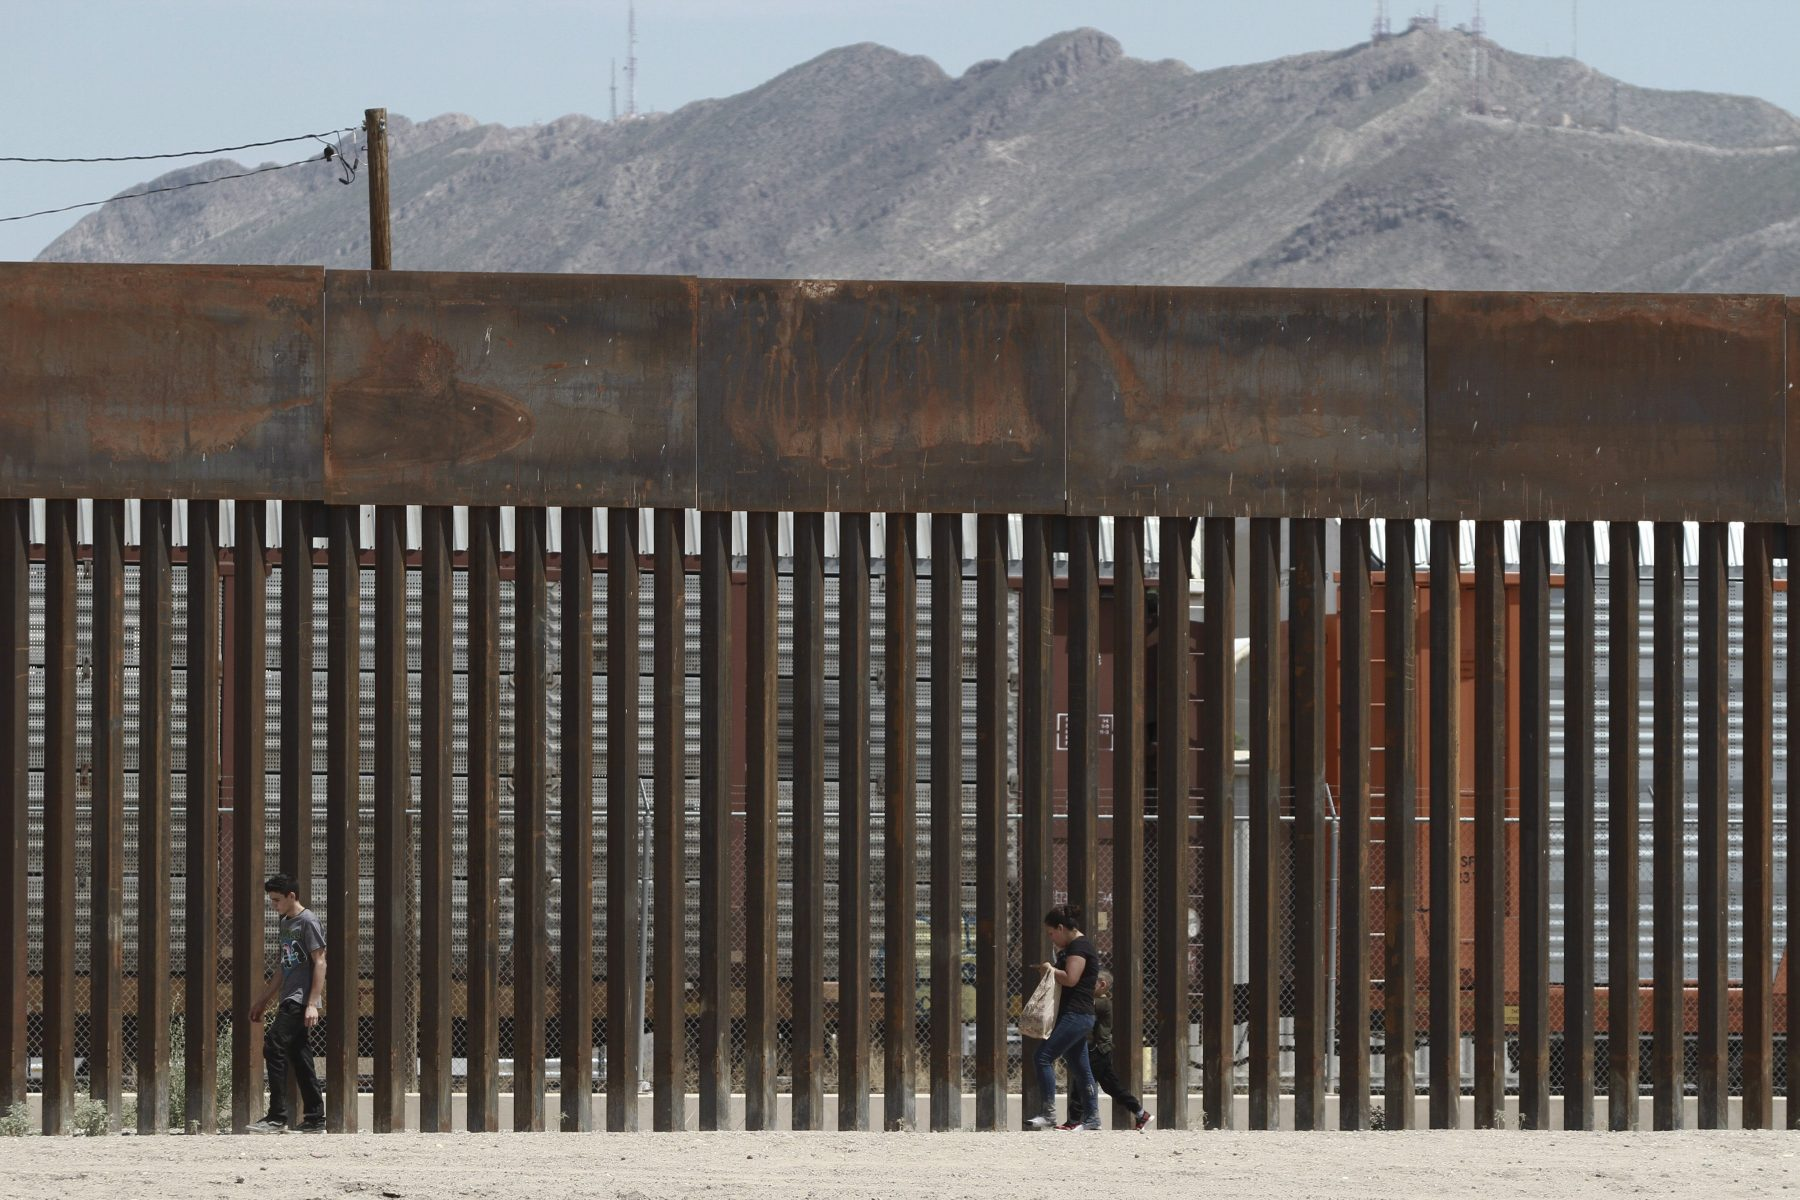 Alaska losing $102M in military construction for wall on U.S.-Mexico border